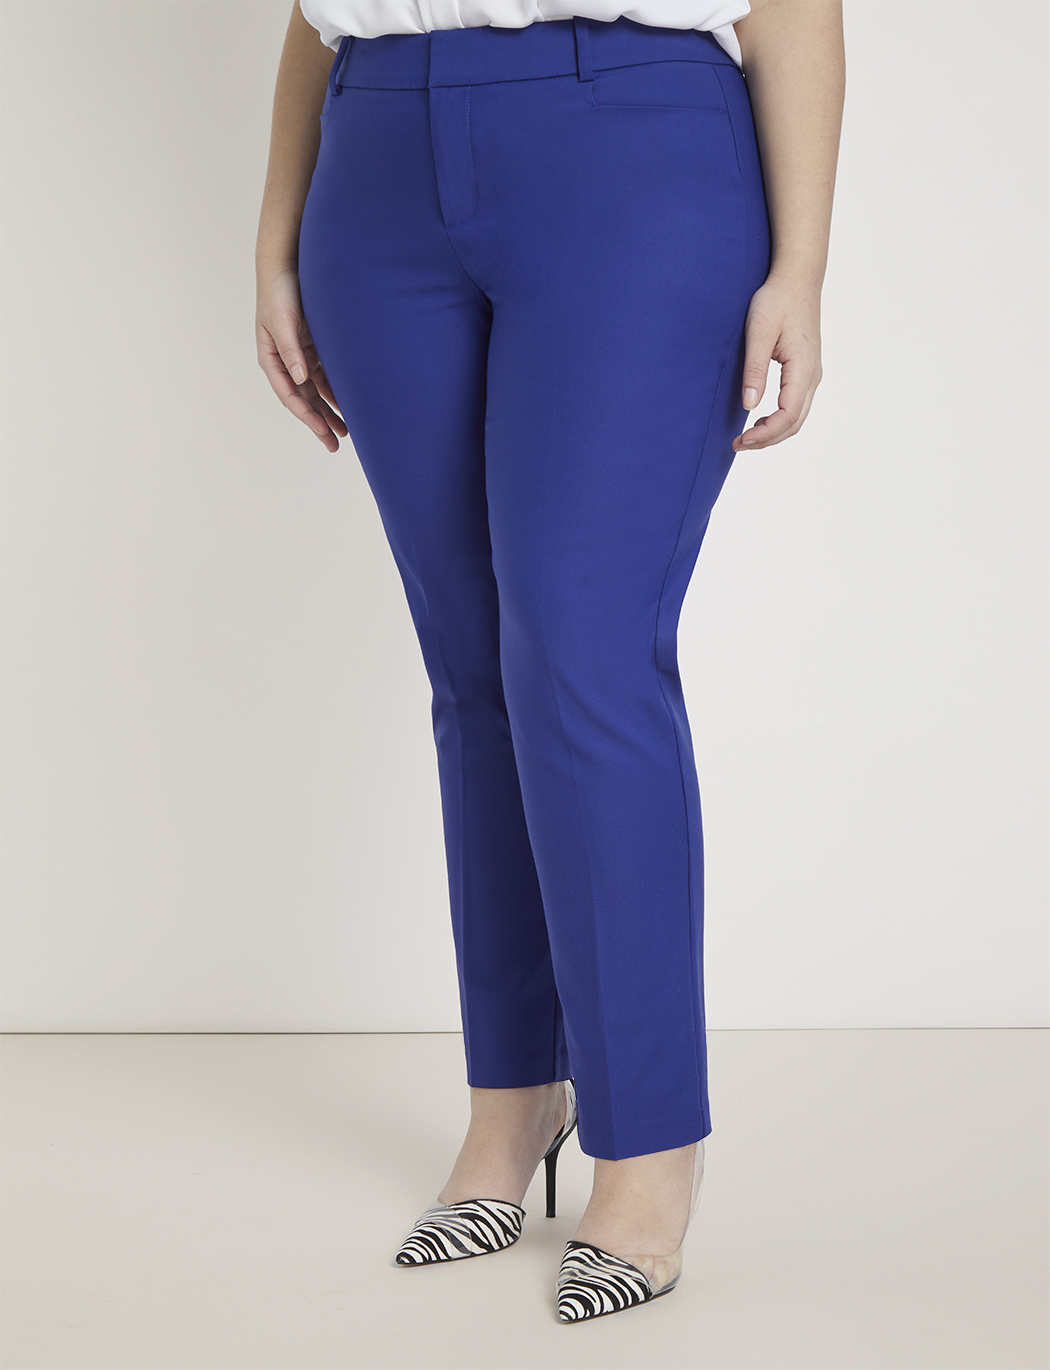 Kady Fit Double-Weave Pant